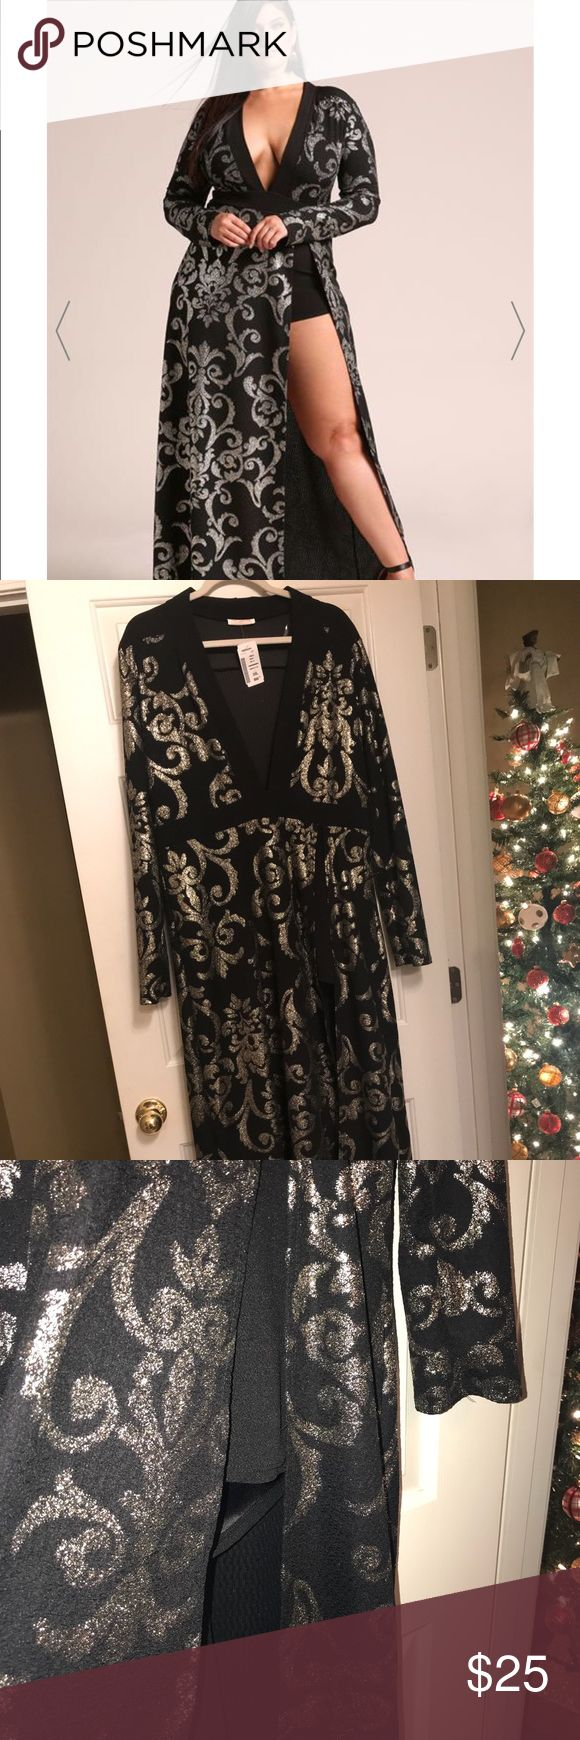 DEB shops Maxi Romper Dress Beautiful stretchy fabric. Romper with a maxi dress built over it with a split to reveal the romper. Did not fit me but it's beautiful! Deb Dresses Maxi